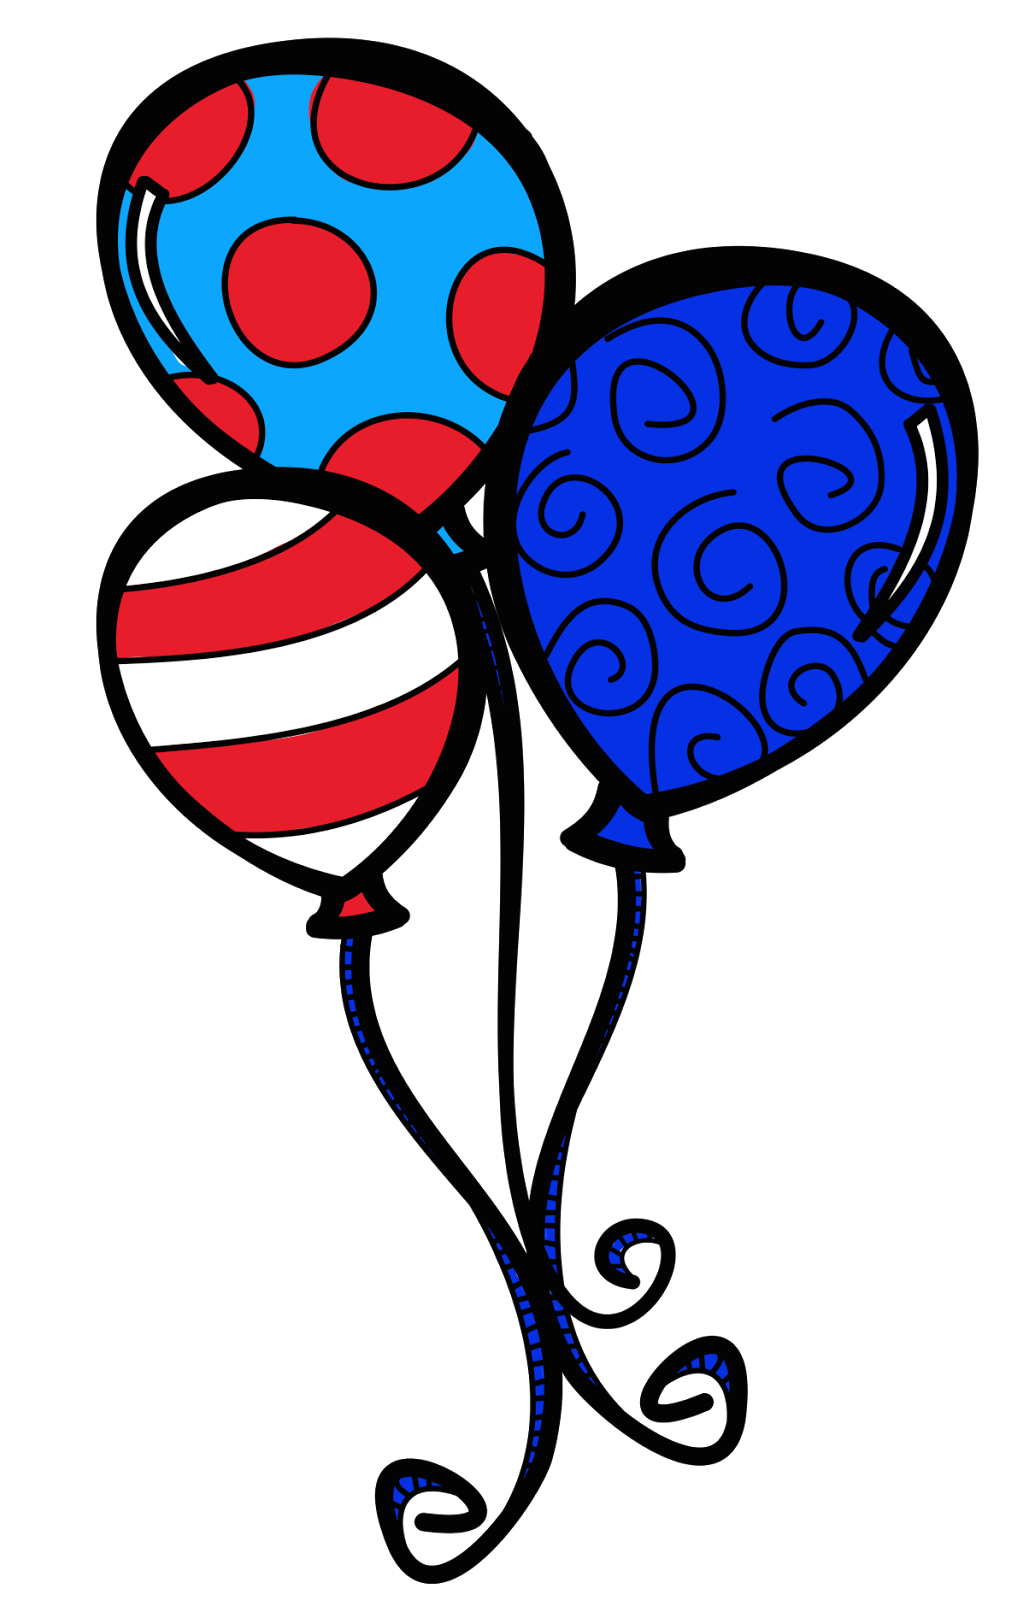 dr seuss balloon clipart ryders 1st party pinterest rh pinterest com Dr. Seuss Diaper Dr. Seuss Diaper